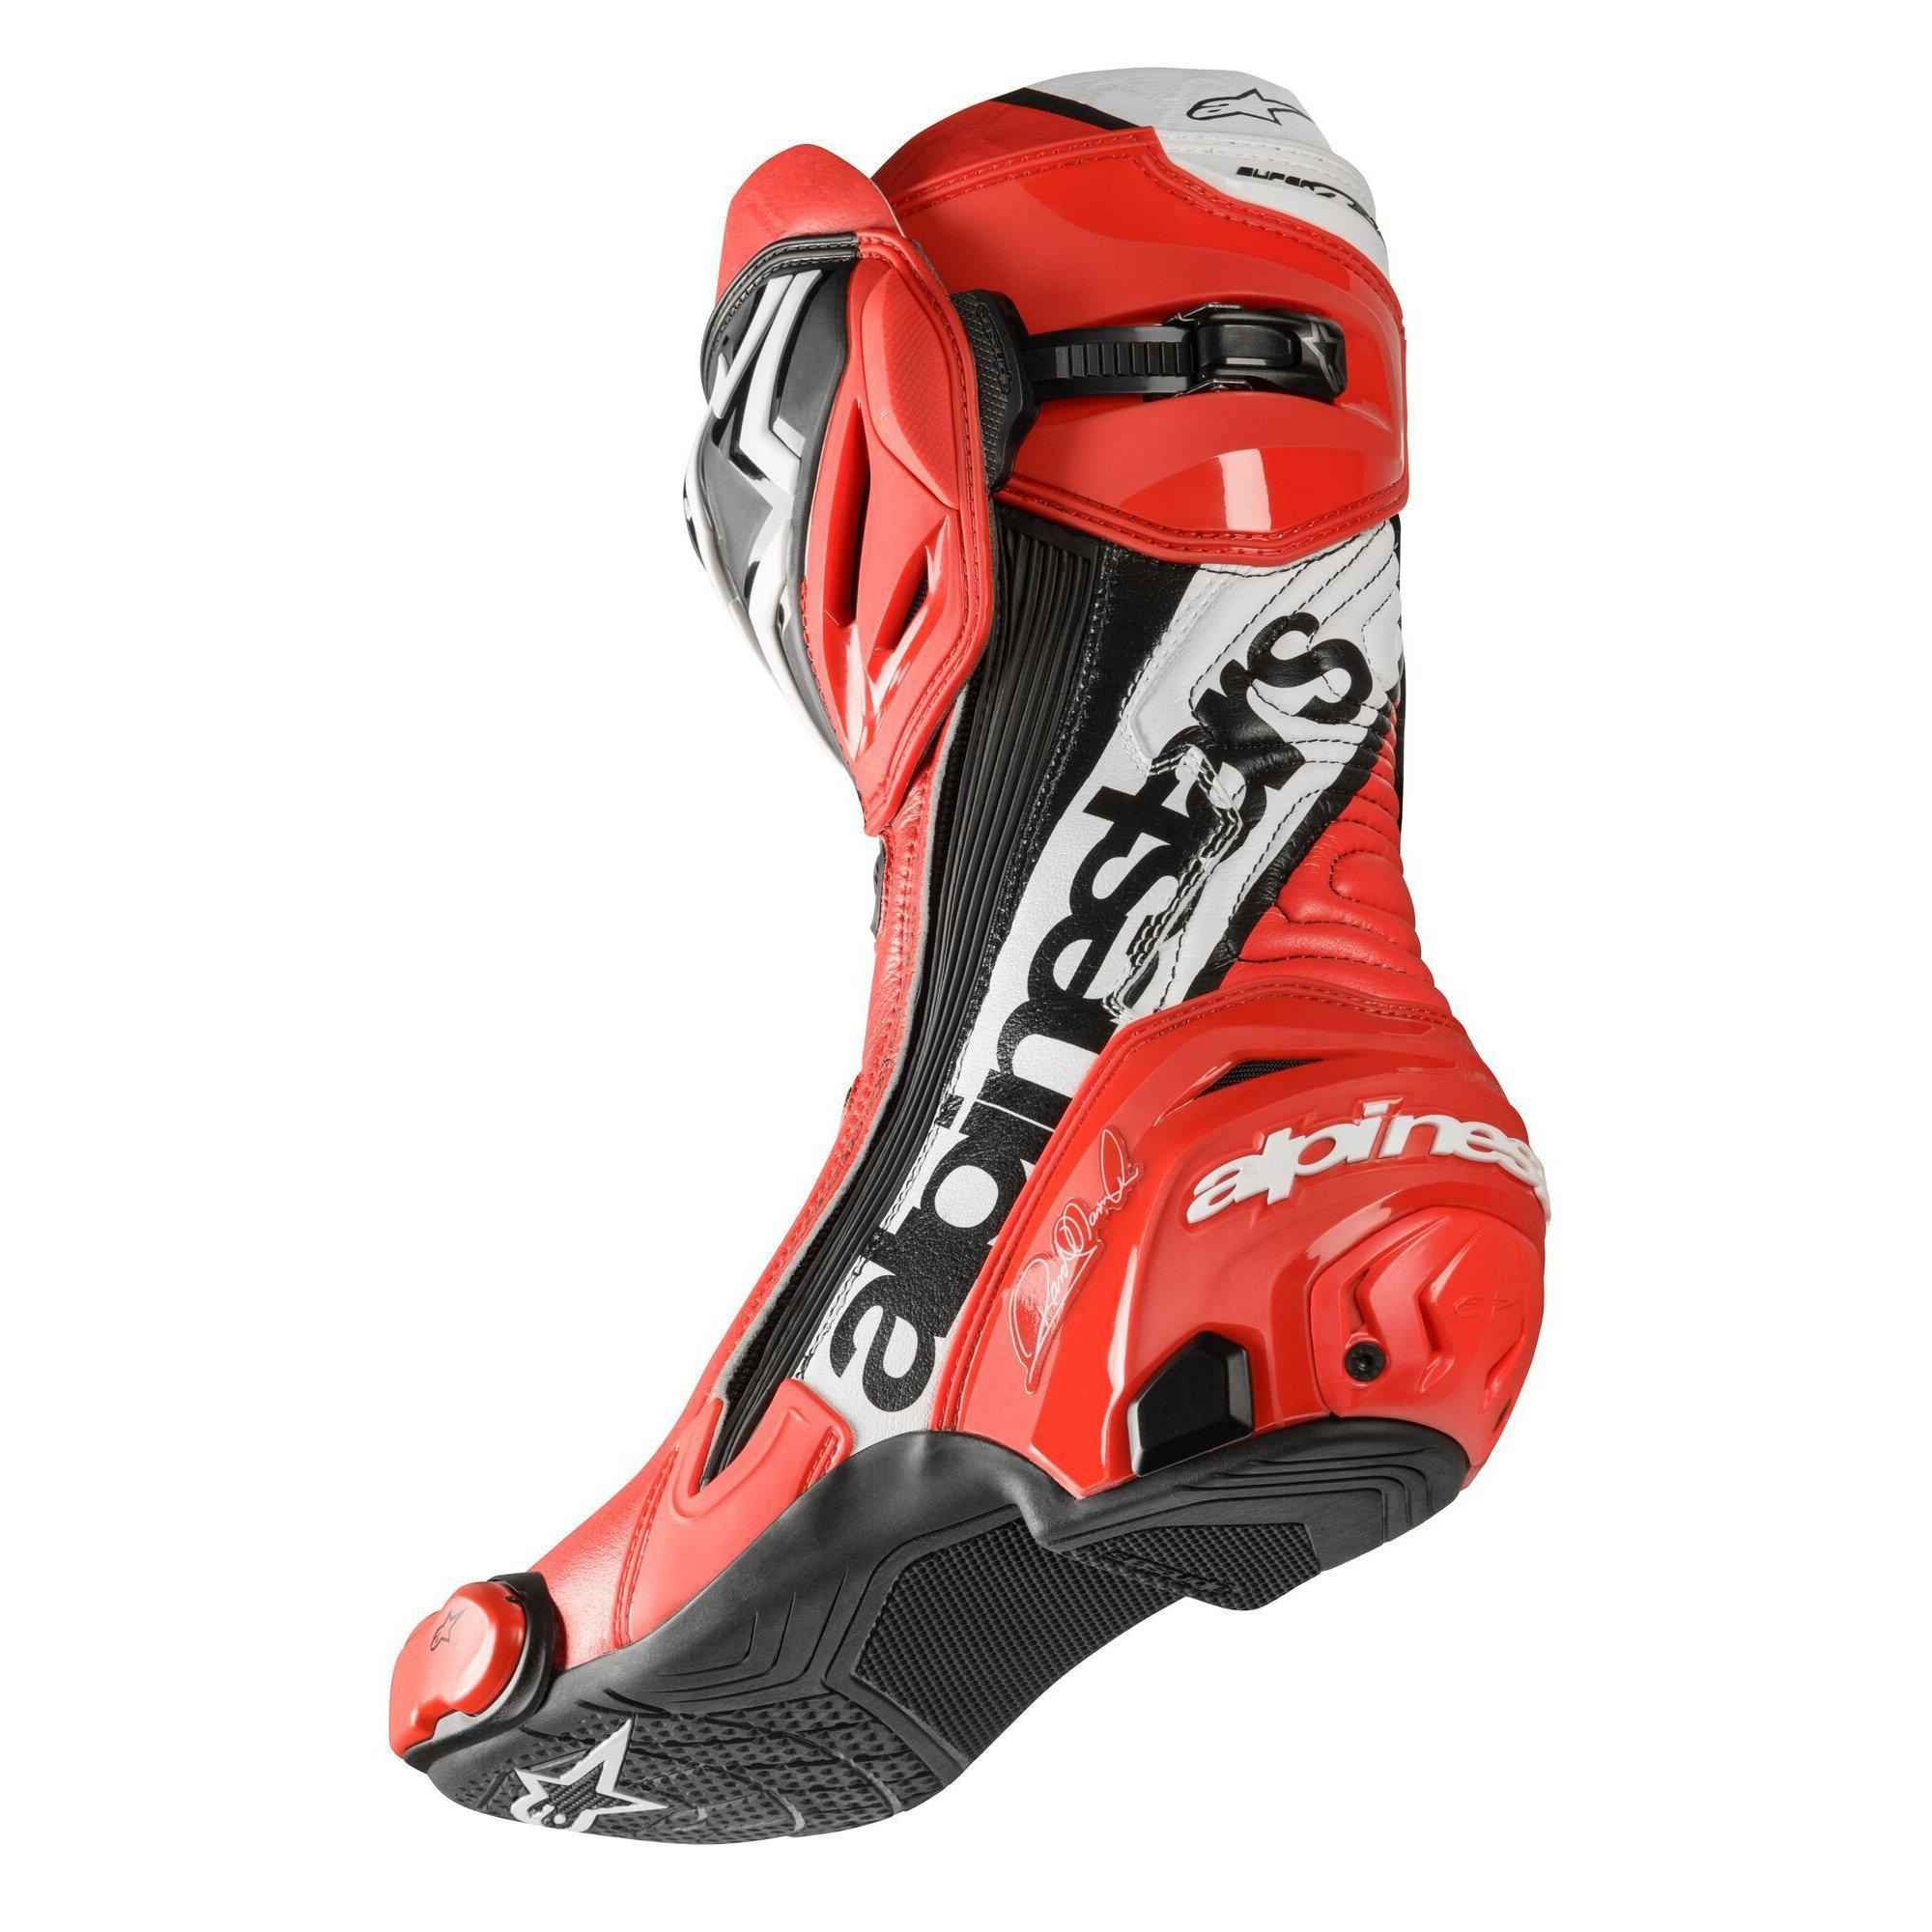 Limited Edition Randy Mamola Supertech R Boots